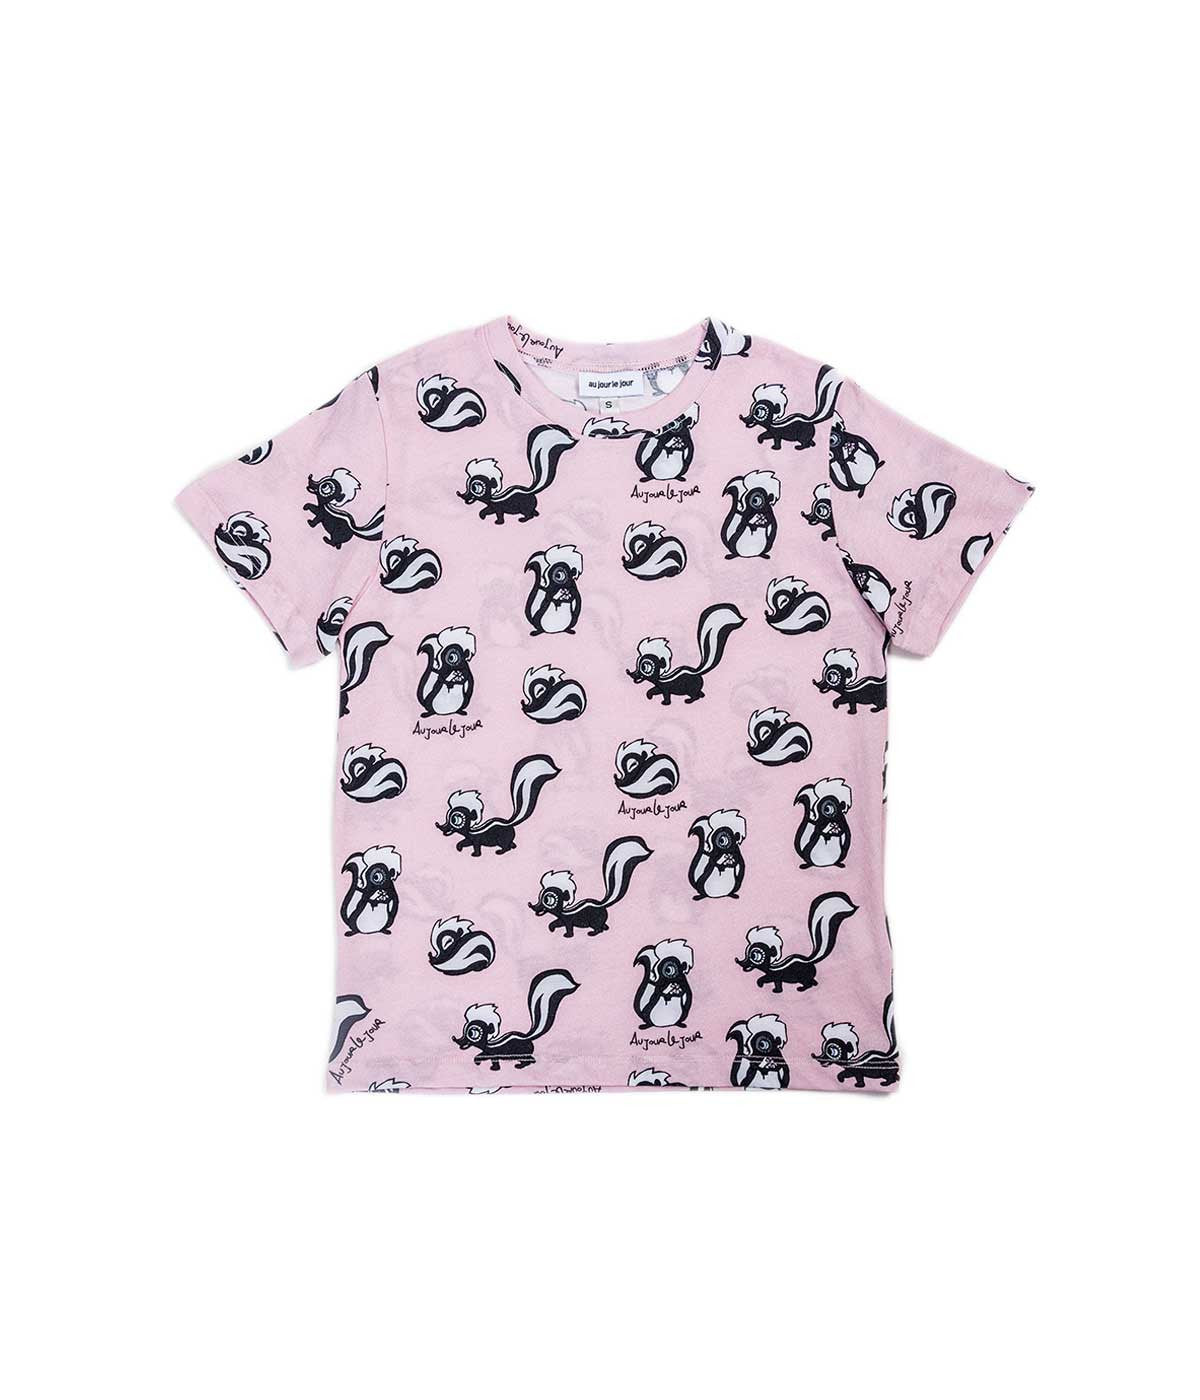 Pink Allover Skunk Print T-shirt